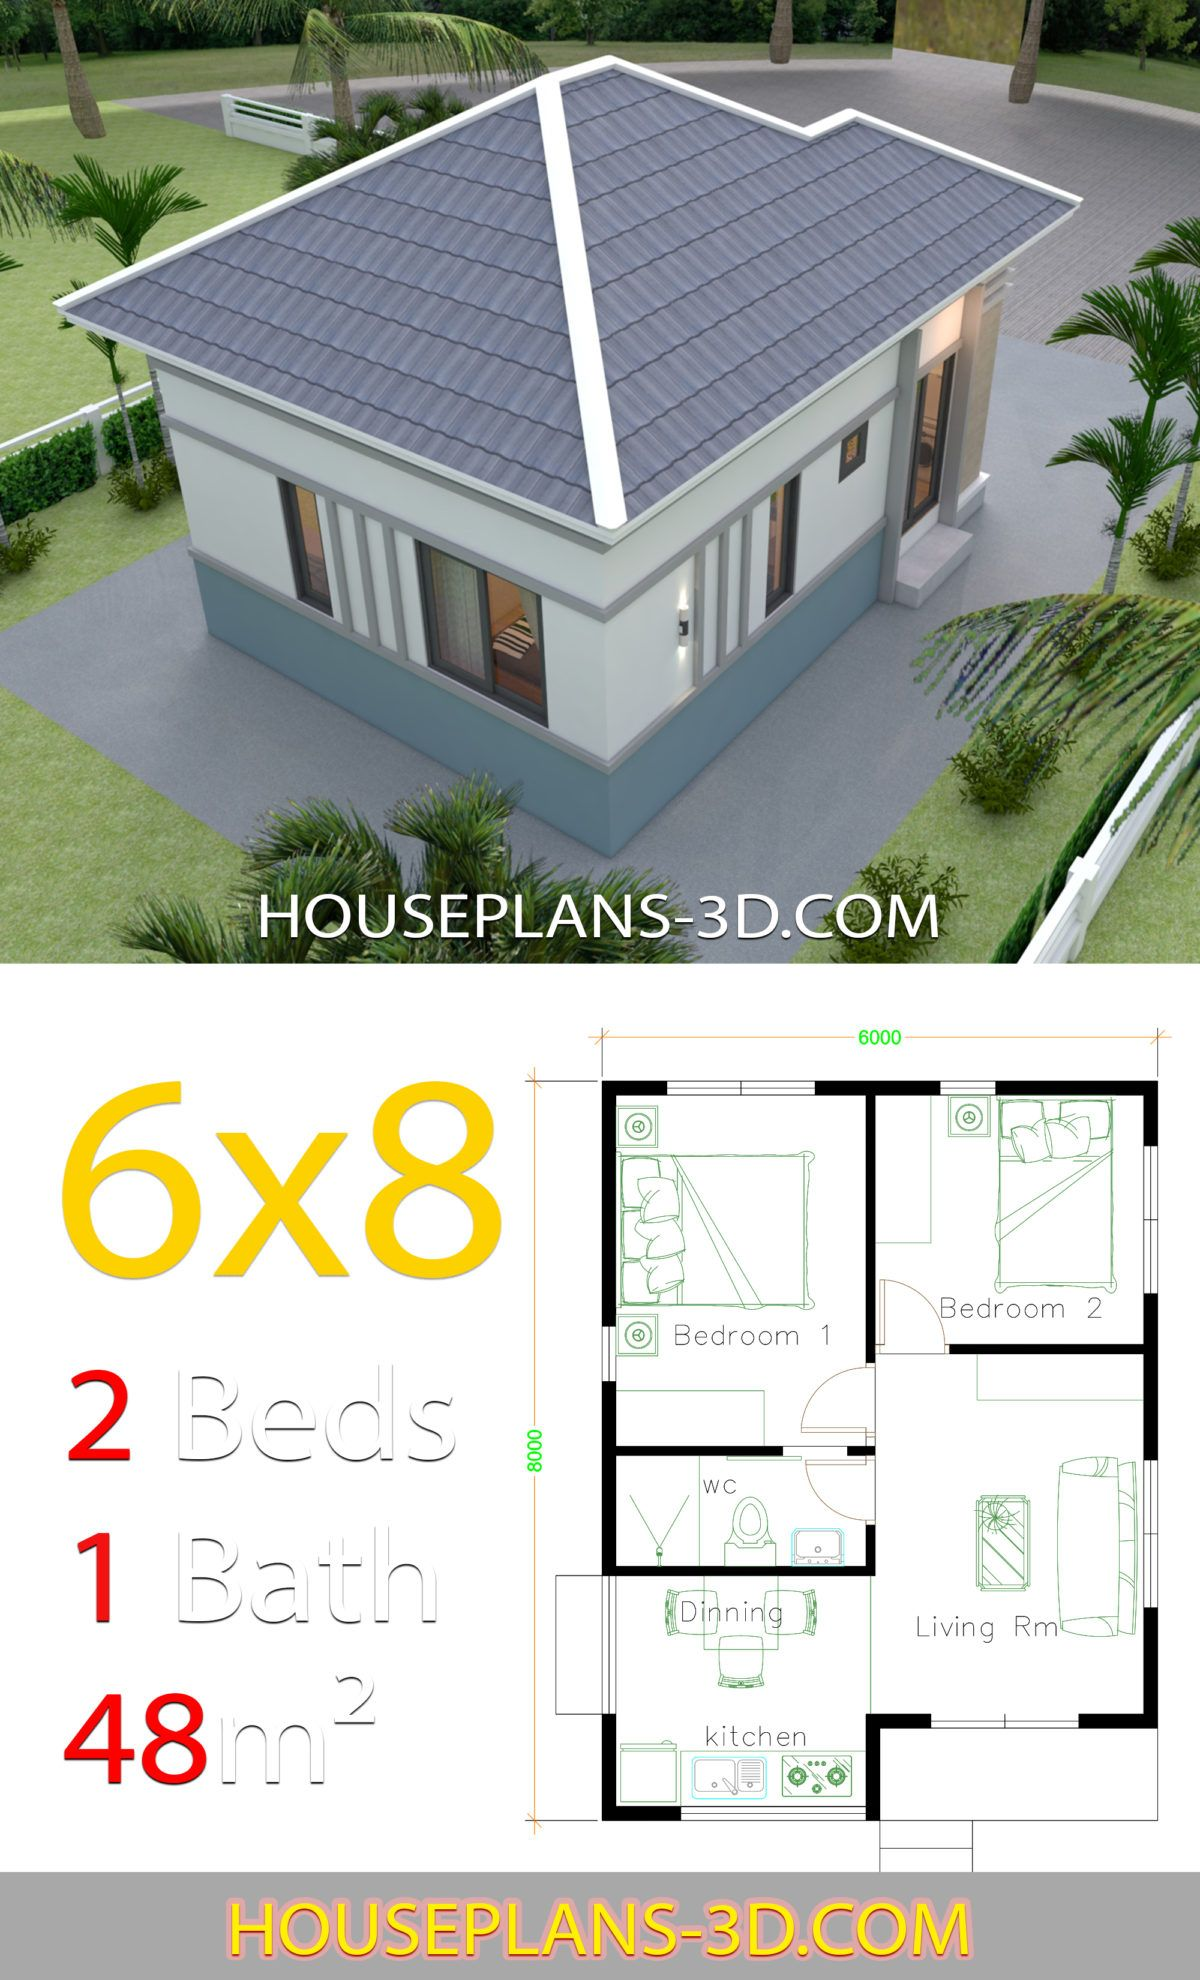 House Plans 3d 8x6 With 2 Bedrooms Hip Roof House Plans 3d Affordable House Plans Dream House Plans House Plans